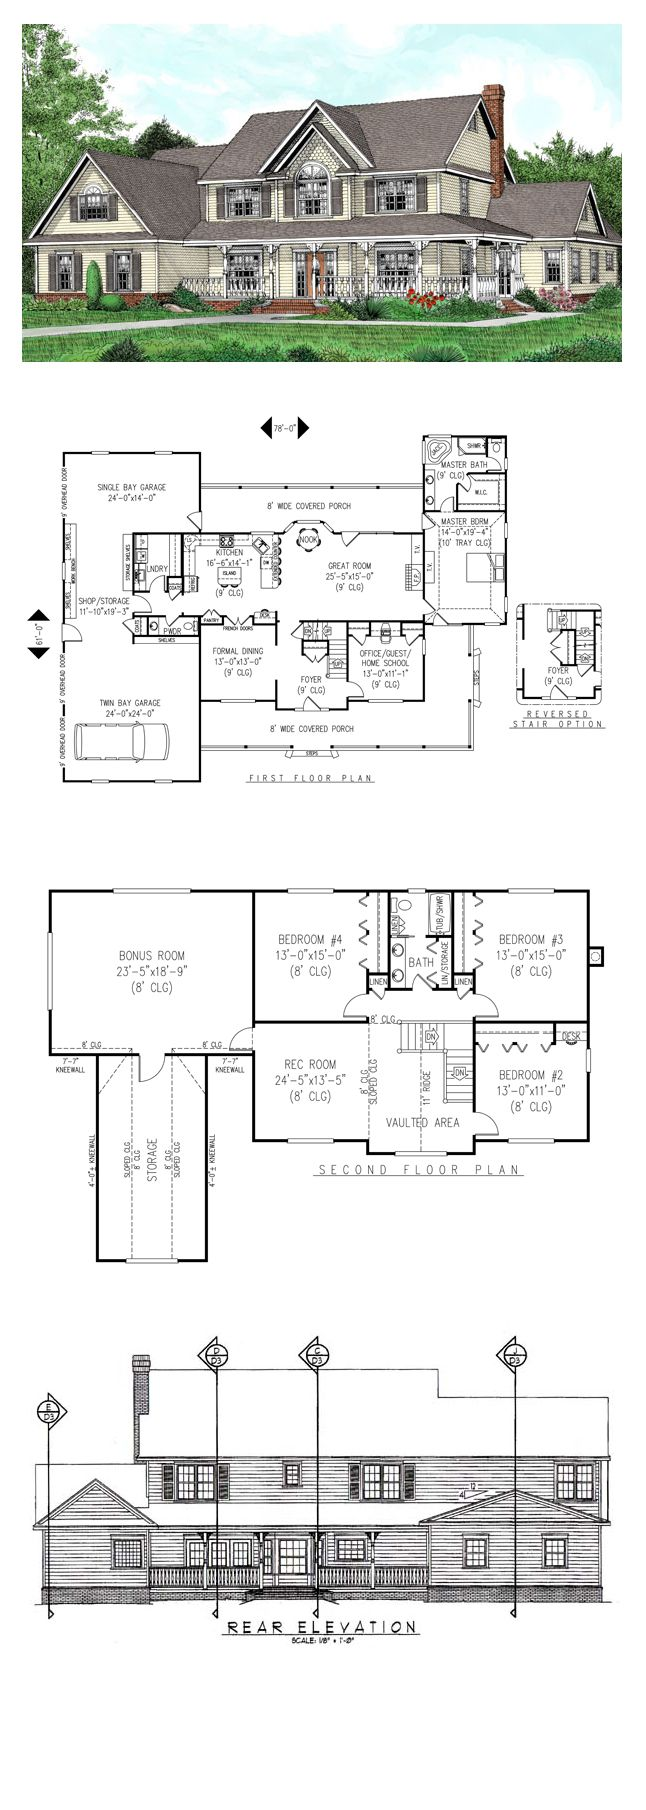 Farmhouse Style COOL House Plan ID: chp-27860 | Total Living Area: 3005 sq. ft., 5 bedrooms & 2.5 bathrooms. #houseplan #farmhouseplan